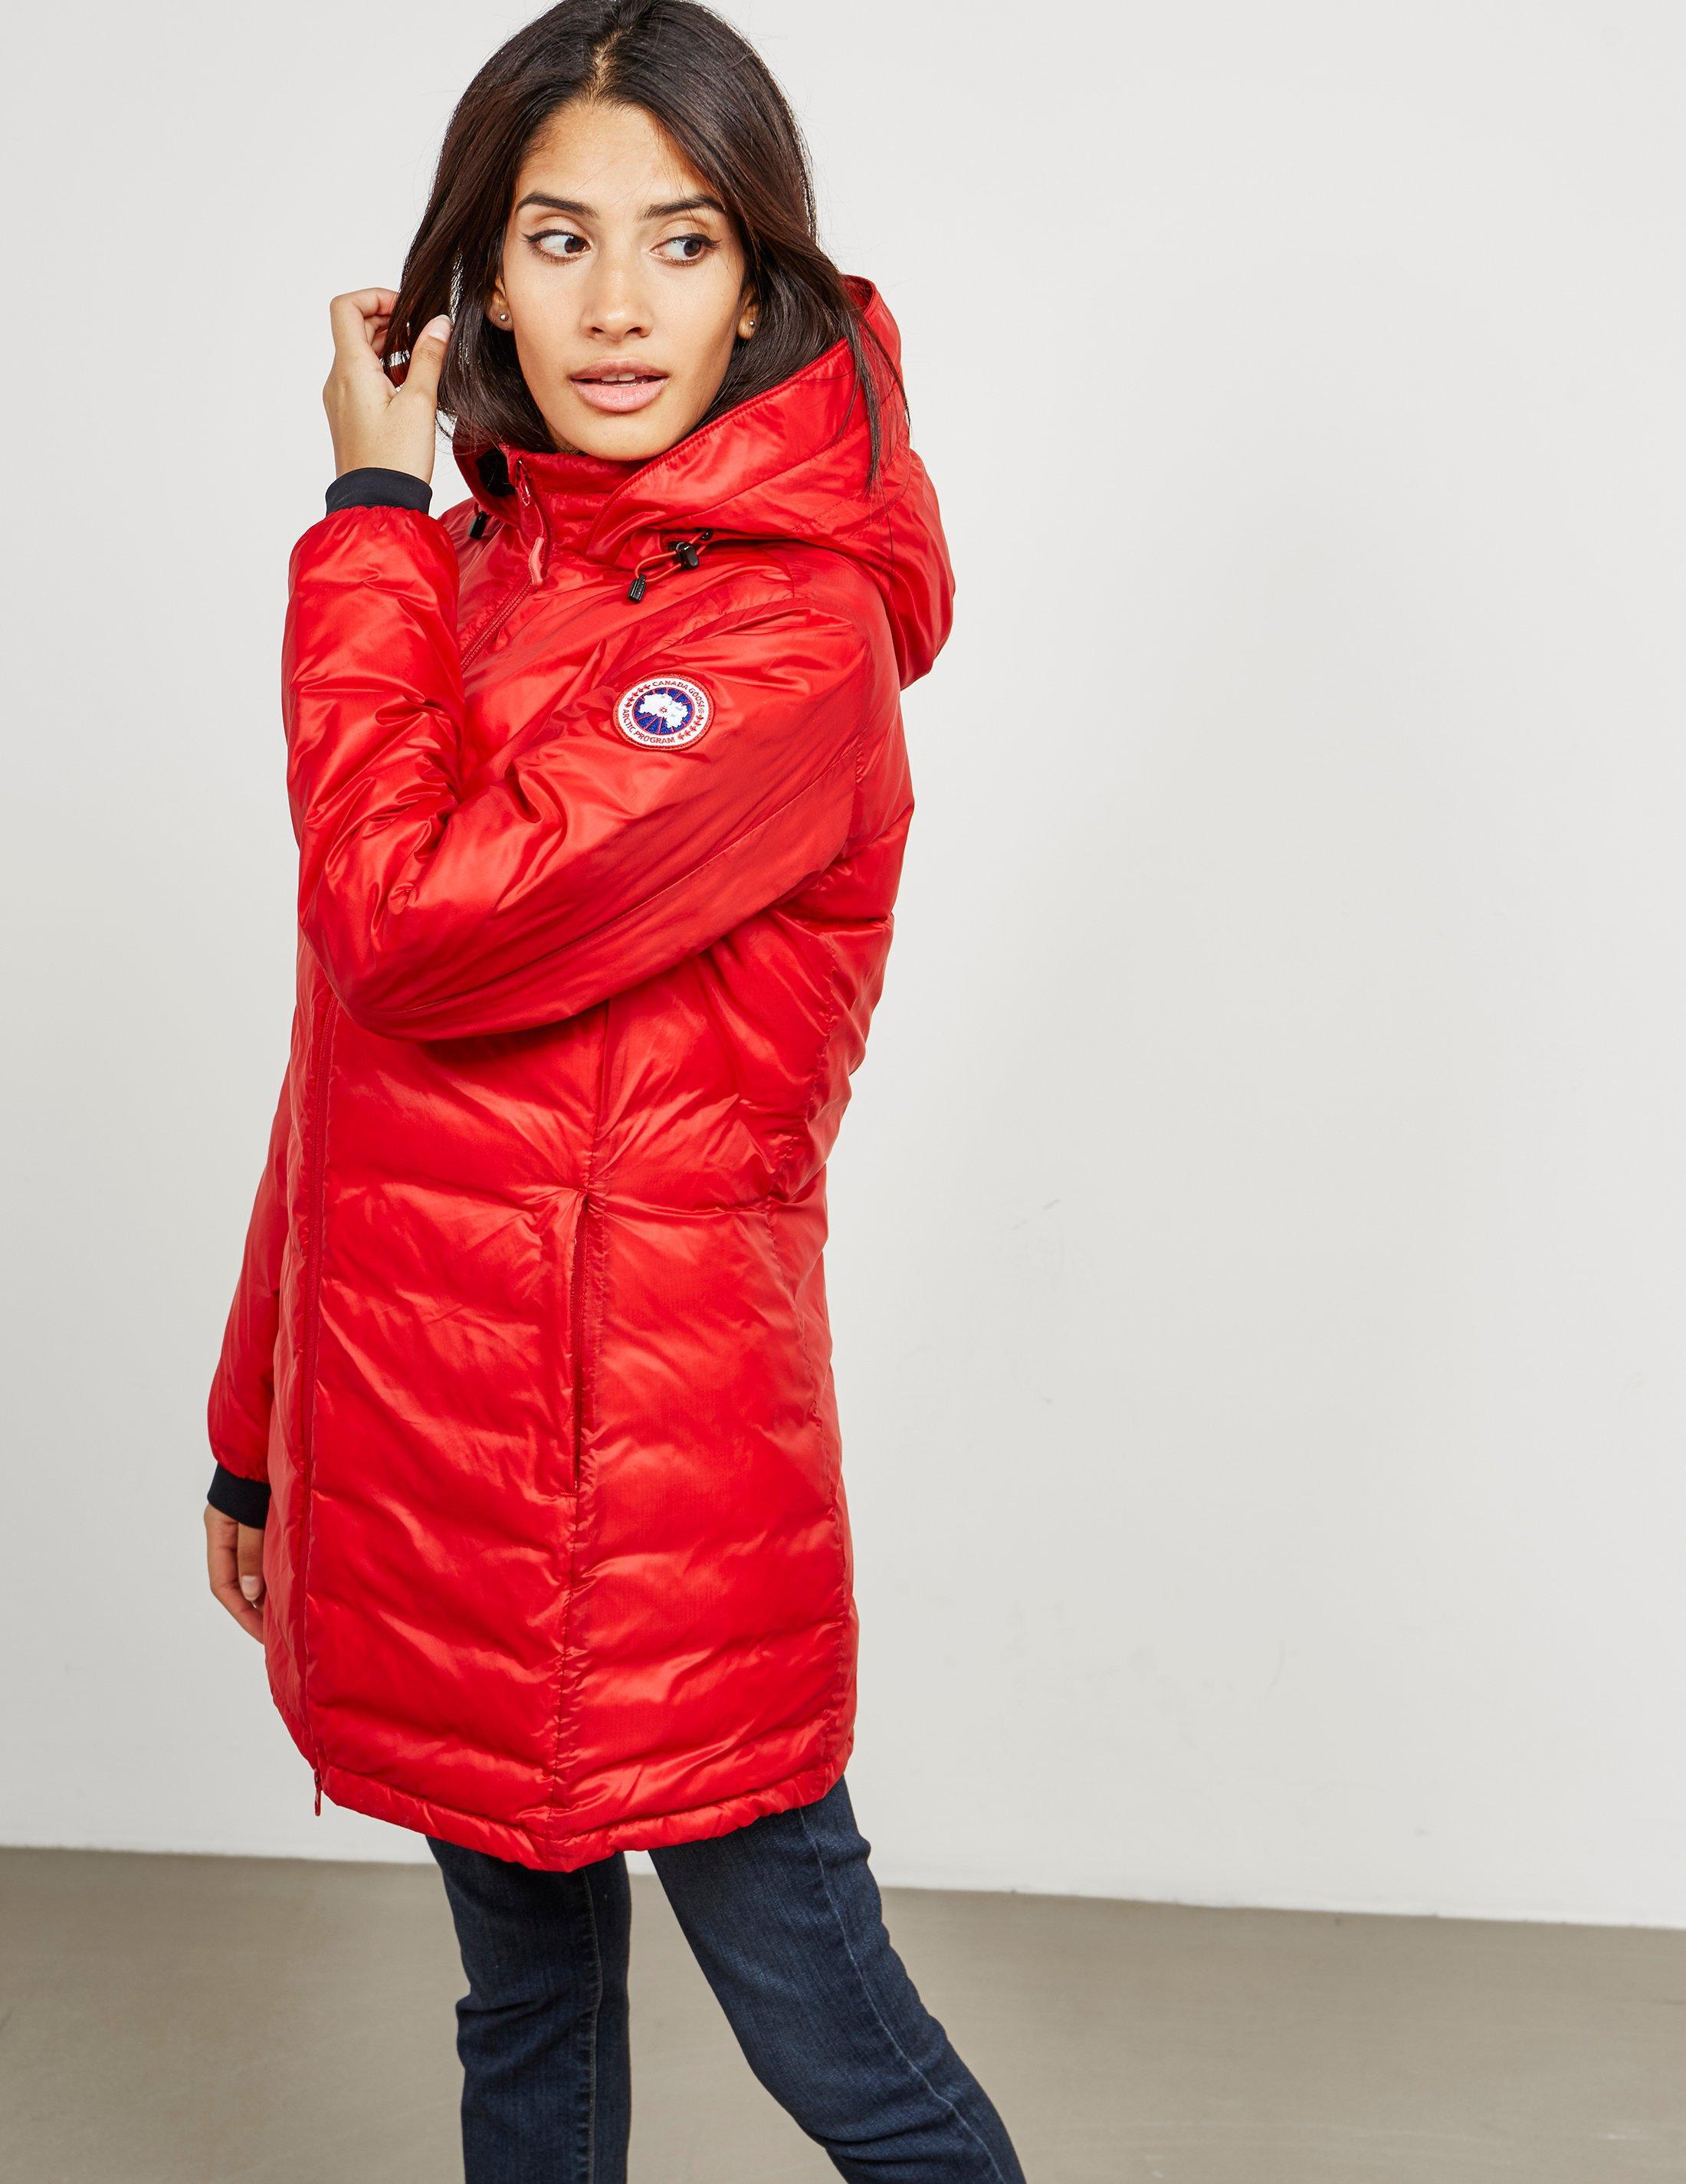 a7aed5272 Canada Goose Womens Camp Hooded Padded Jacket - Online Exclusive Red ...